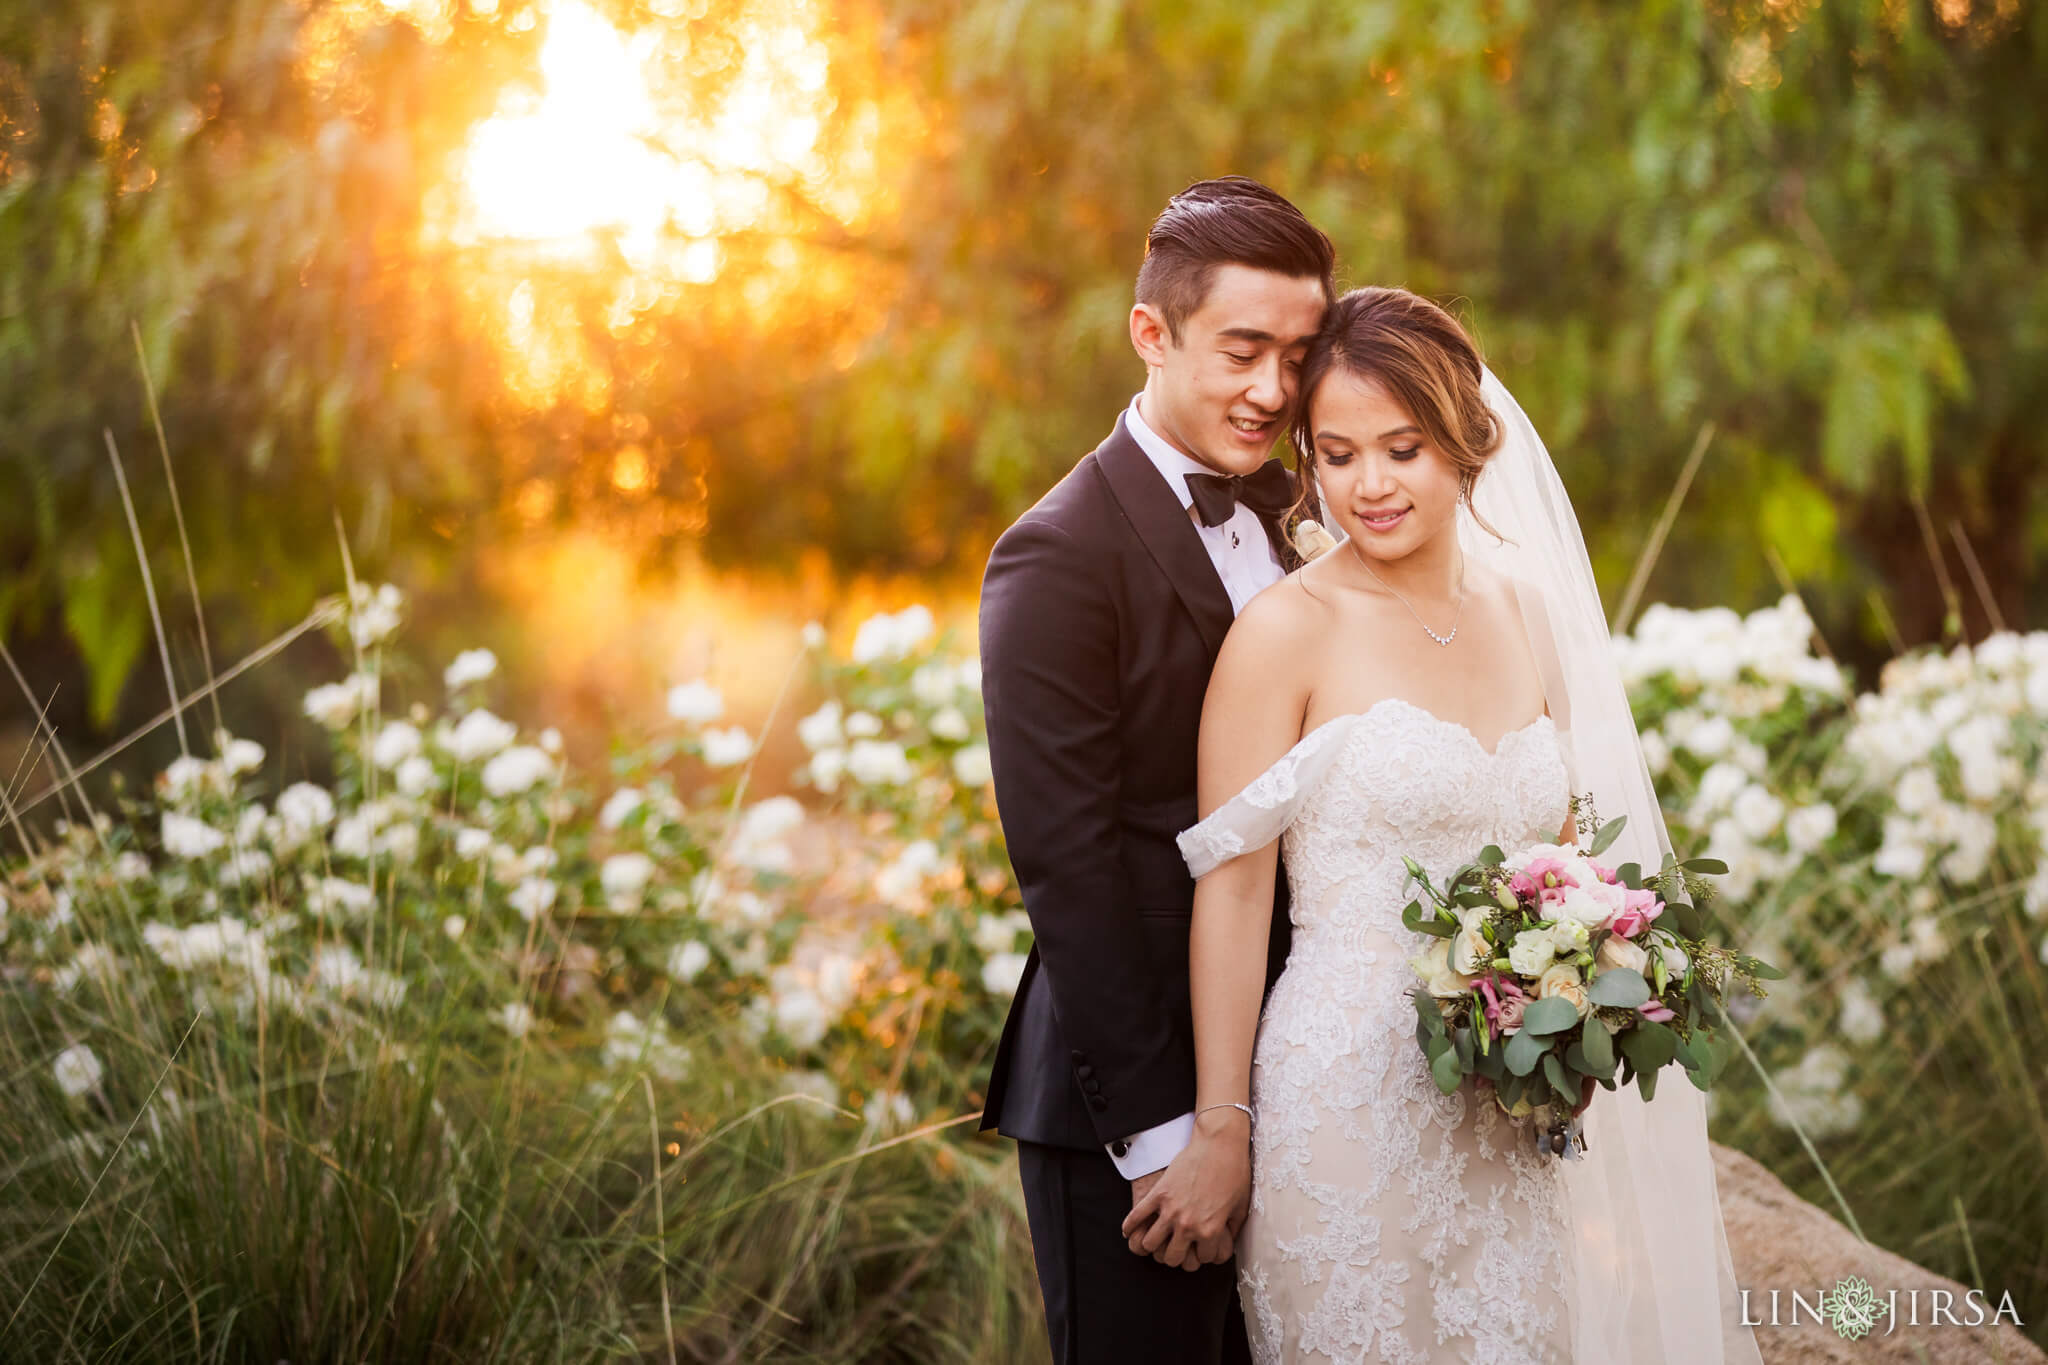 Essential Things You Should Know About Wedding Photography